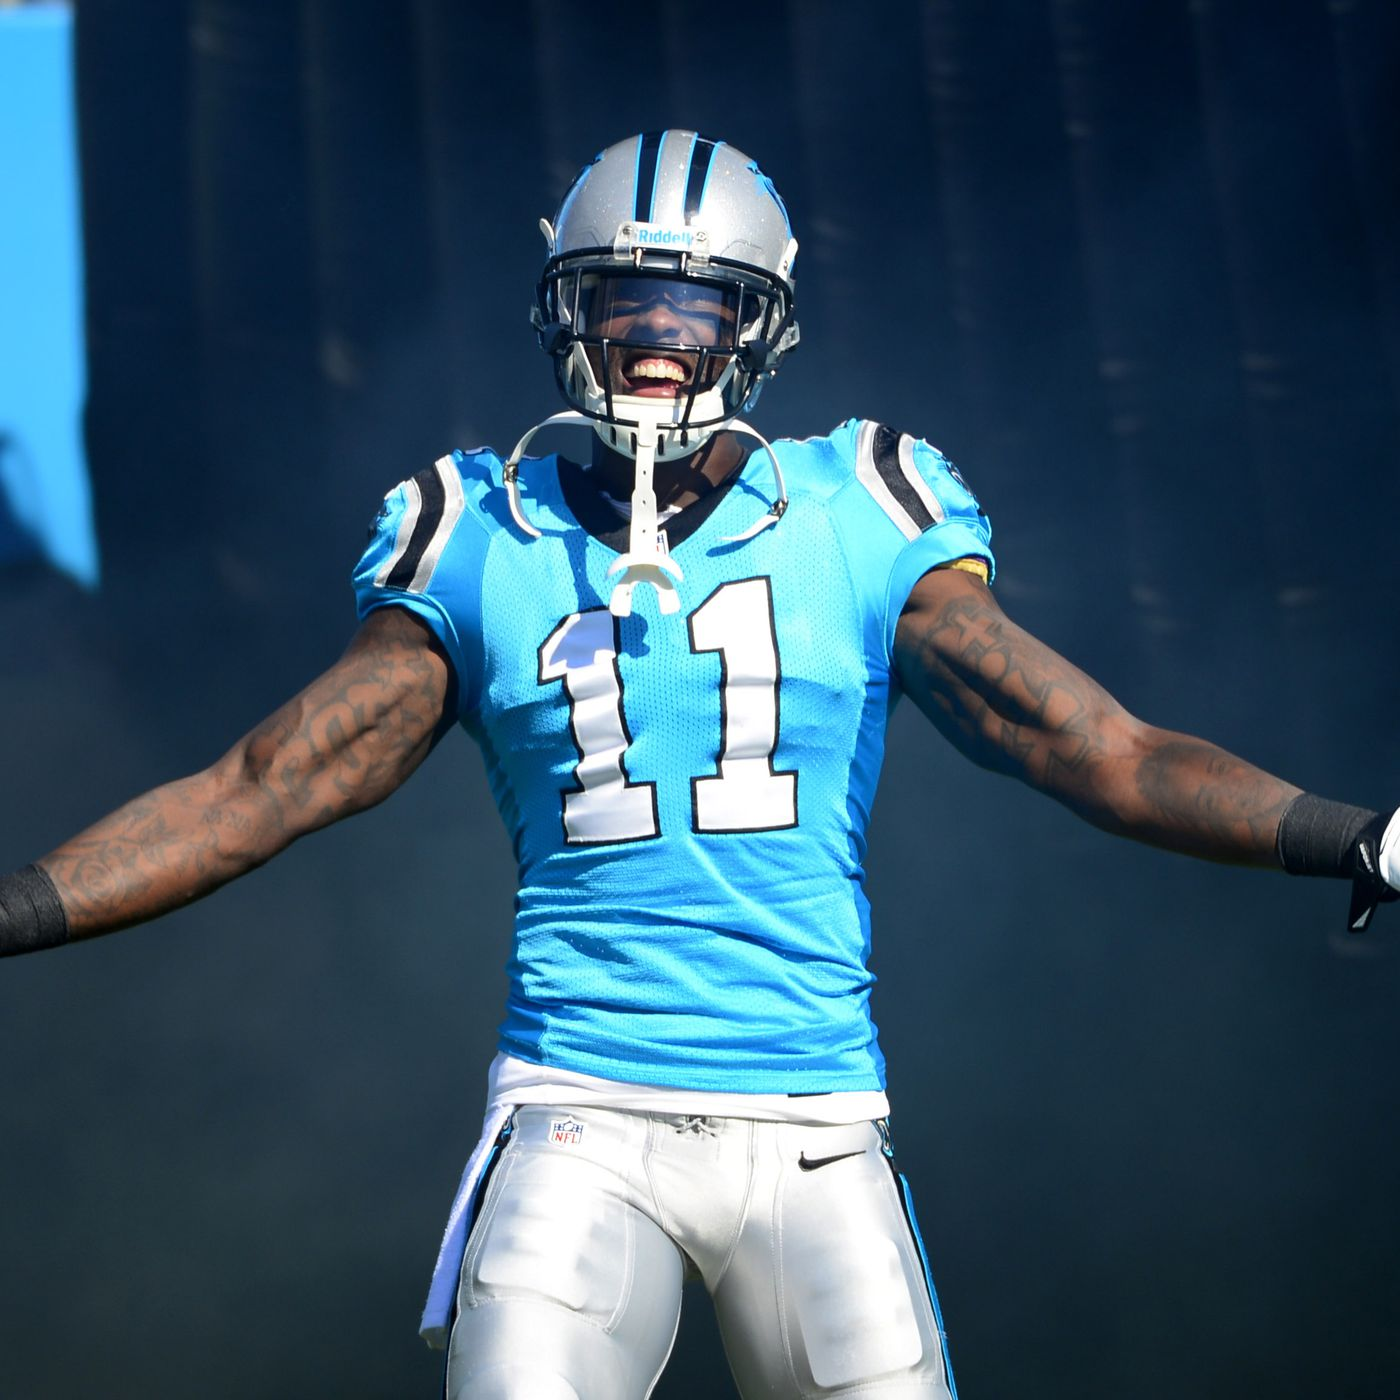 Patriots want receiver Brandon LaFell, Broncos also interested ...